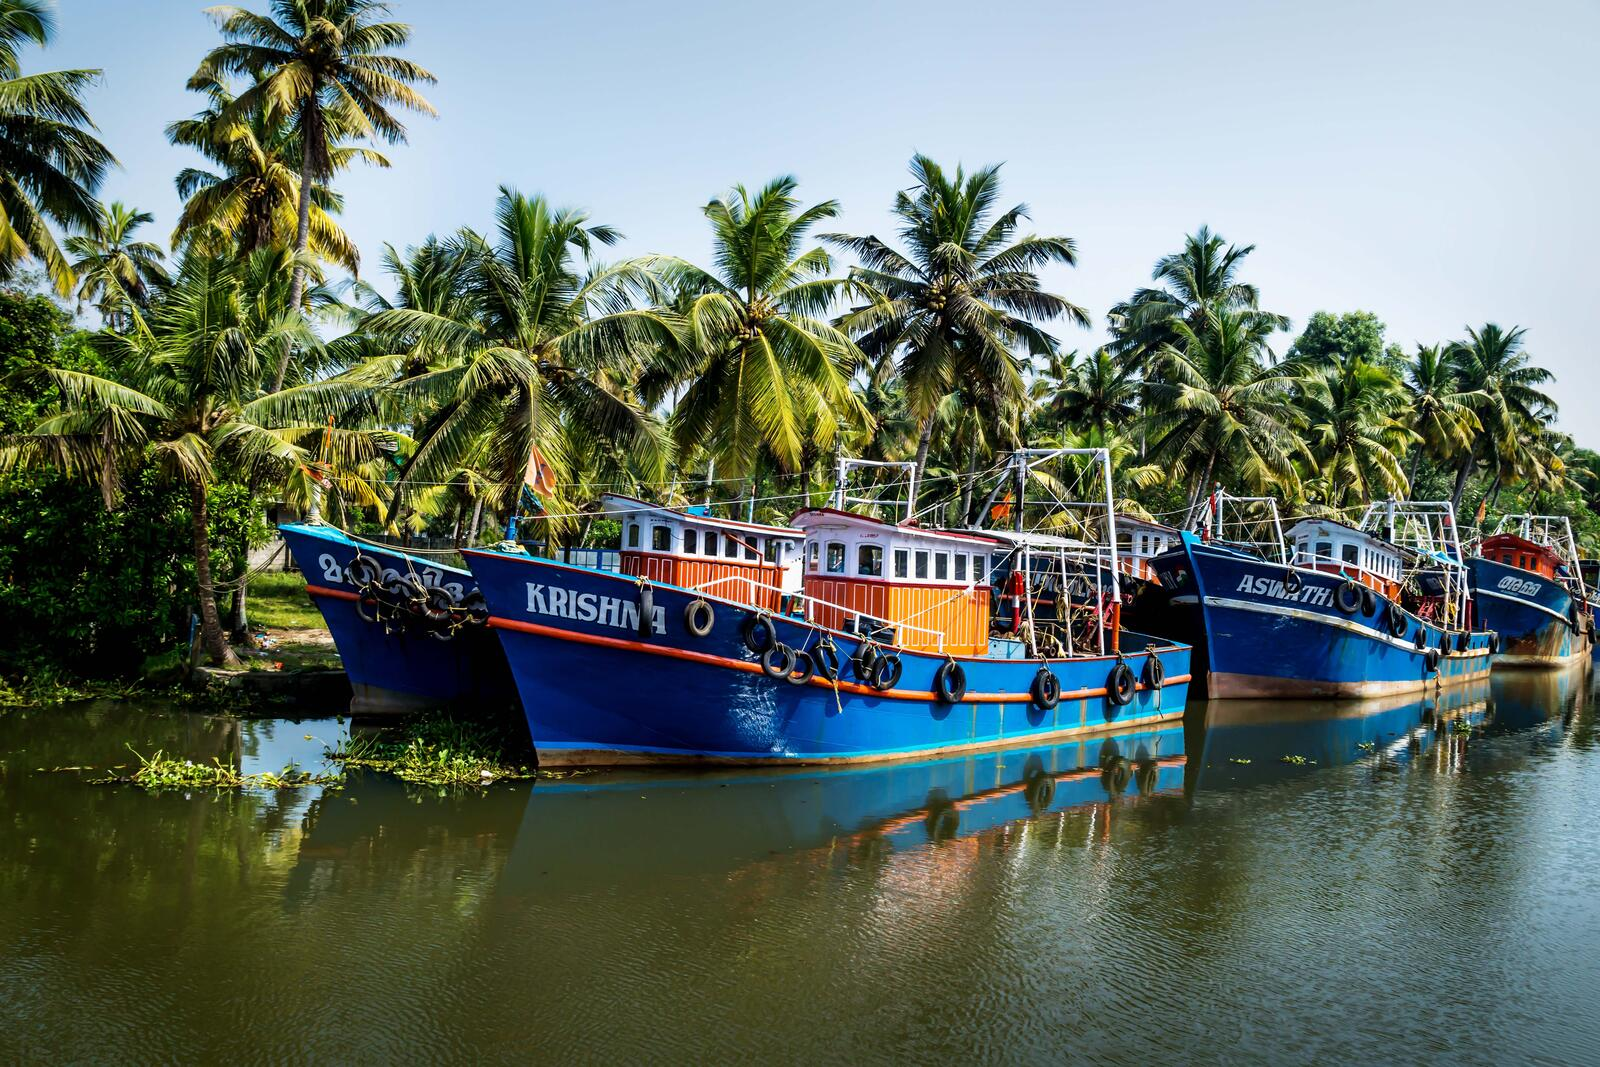 Several fishing boats float in a canal-like space with palm trees in the background